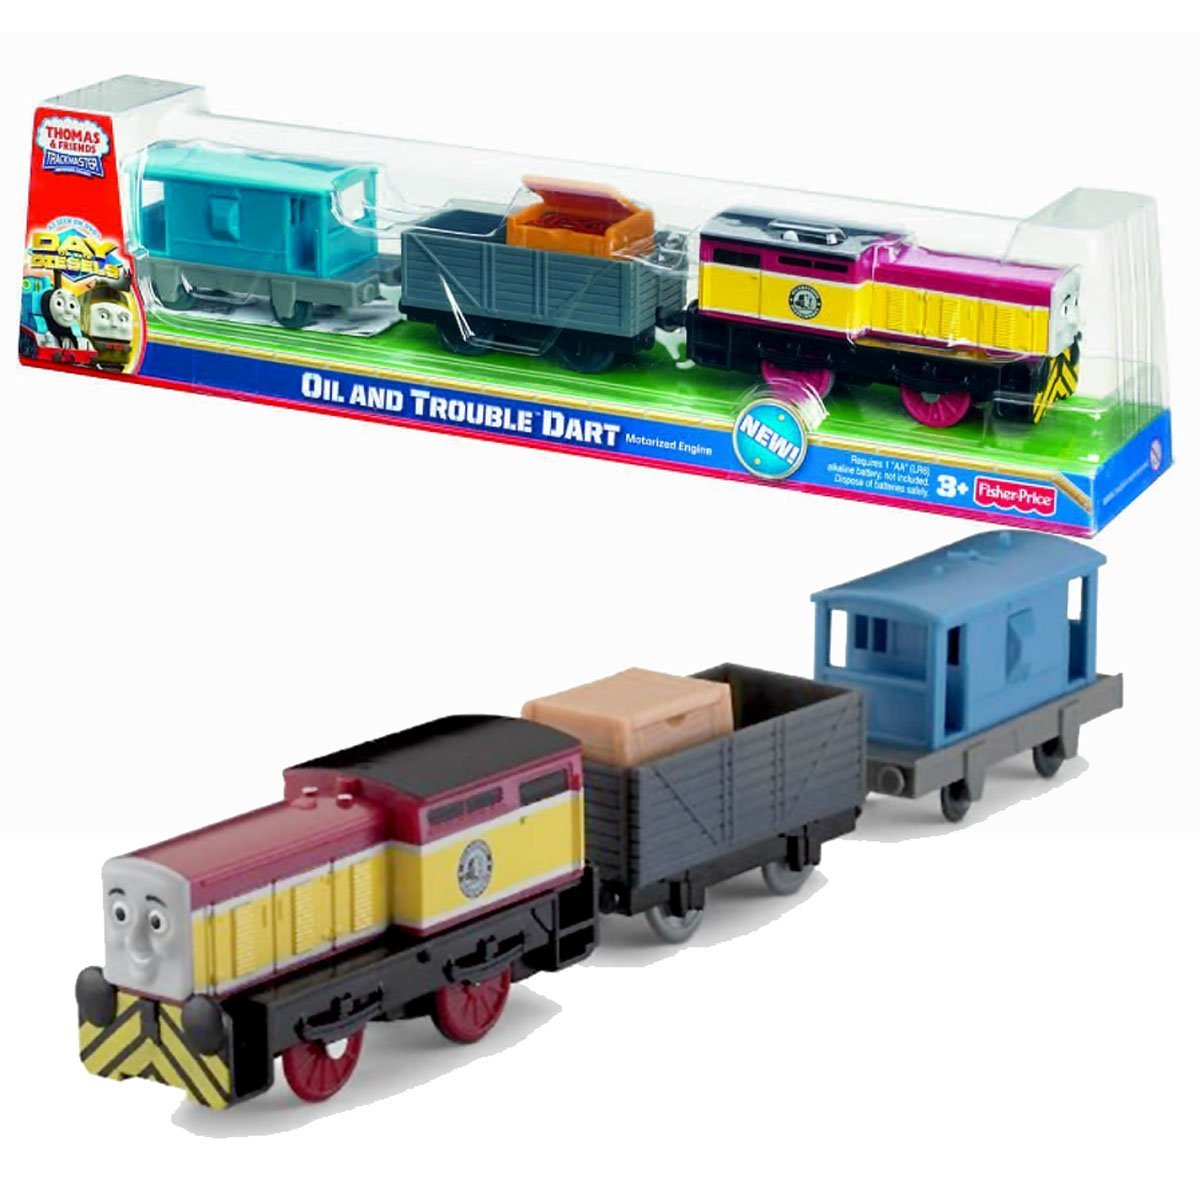 "Fisher Price Year 2011 Thomas & Friends Day of the Diesels Series Trackmaster Motorized Tank Engine 3 Pack Train Set - OIL and TROUBLE DART with Wagon Car Loaded with ""Hose"" Crate and Brake Van"